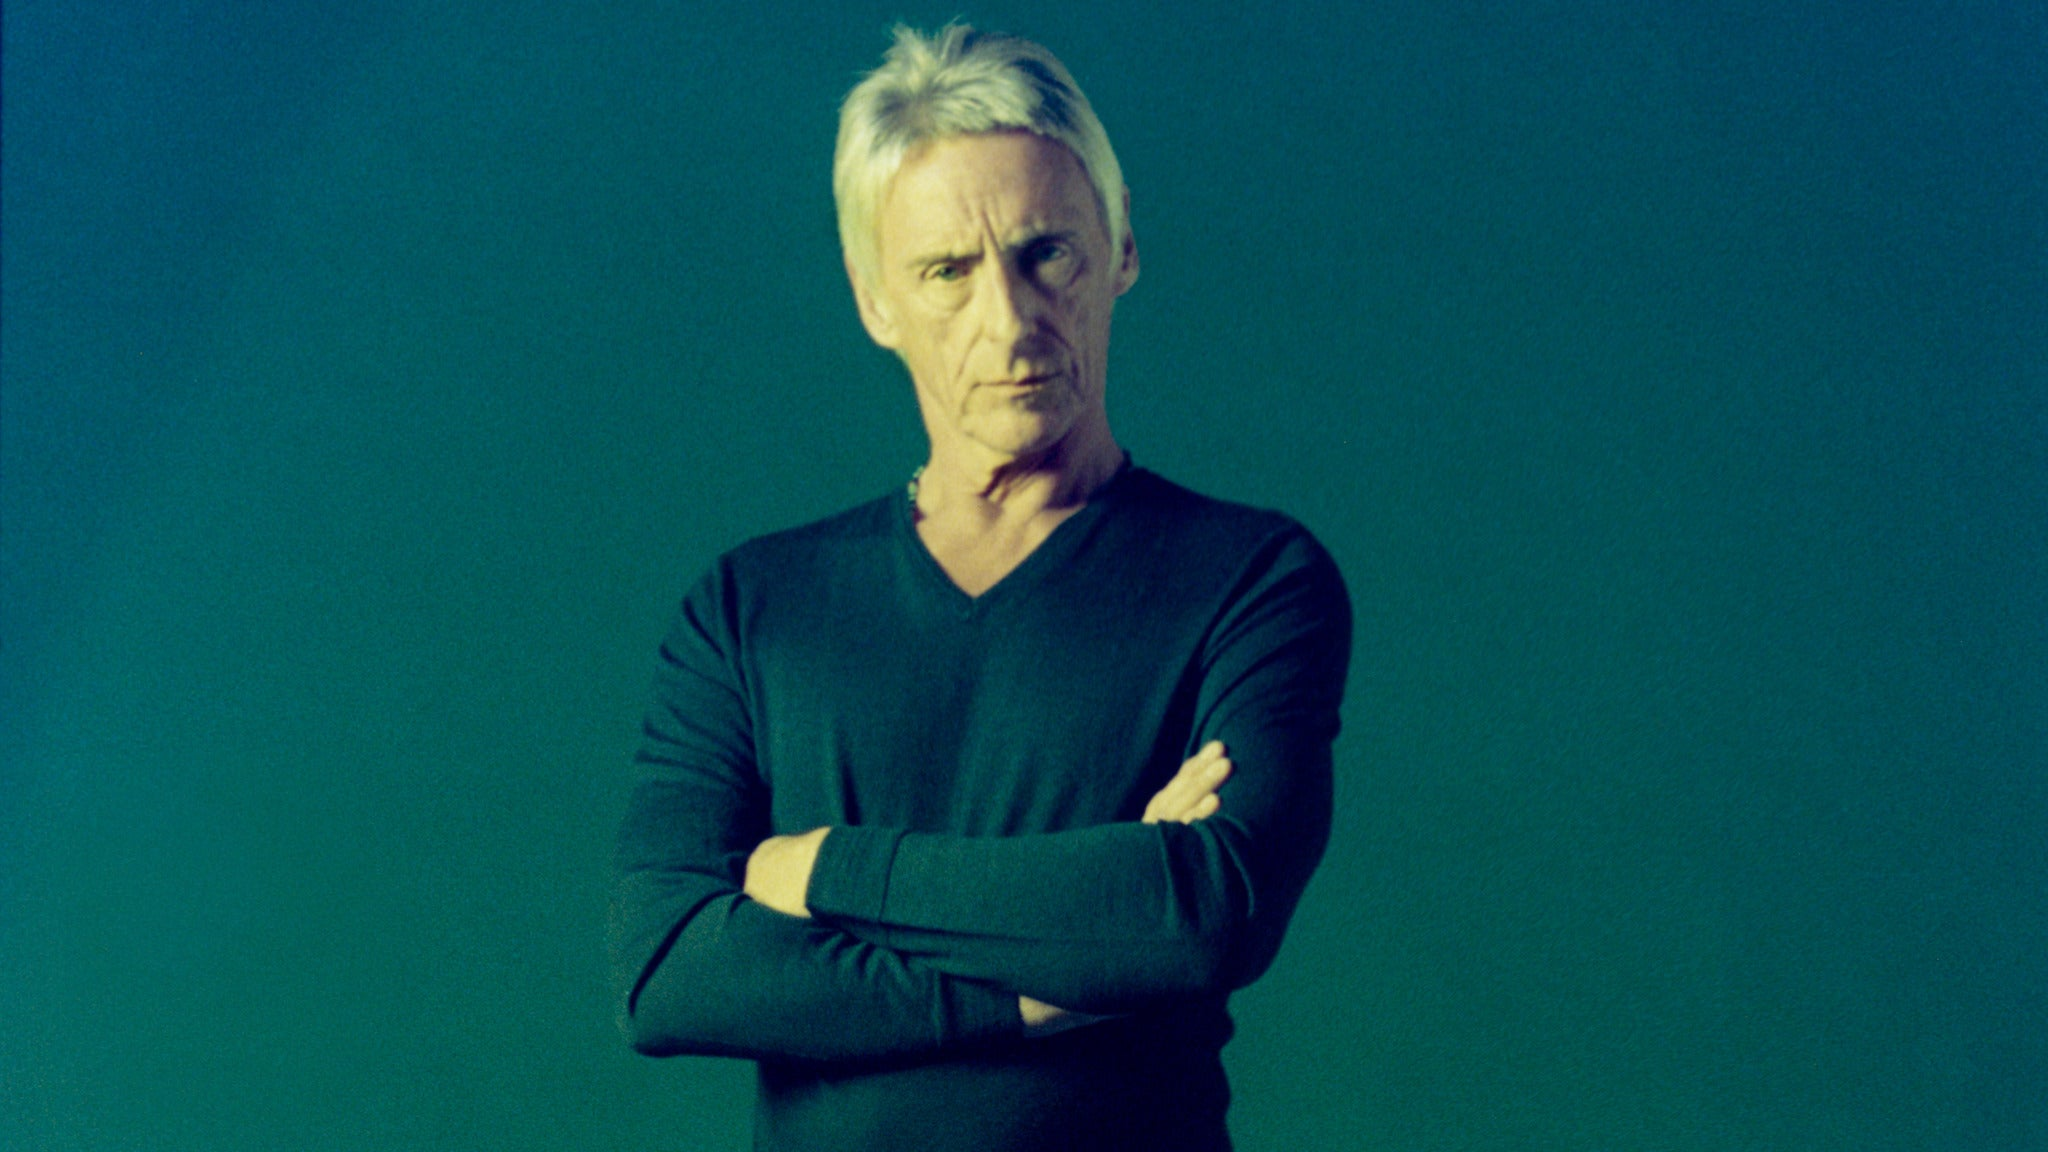 KCSN 88.5 FM Presents - Paul Weller at The Wiltern - Los Angeles, CA 90010